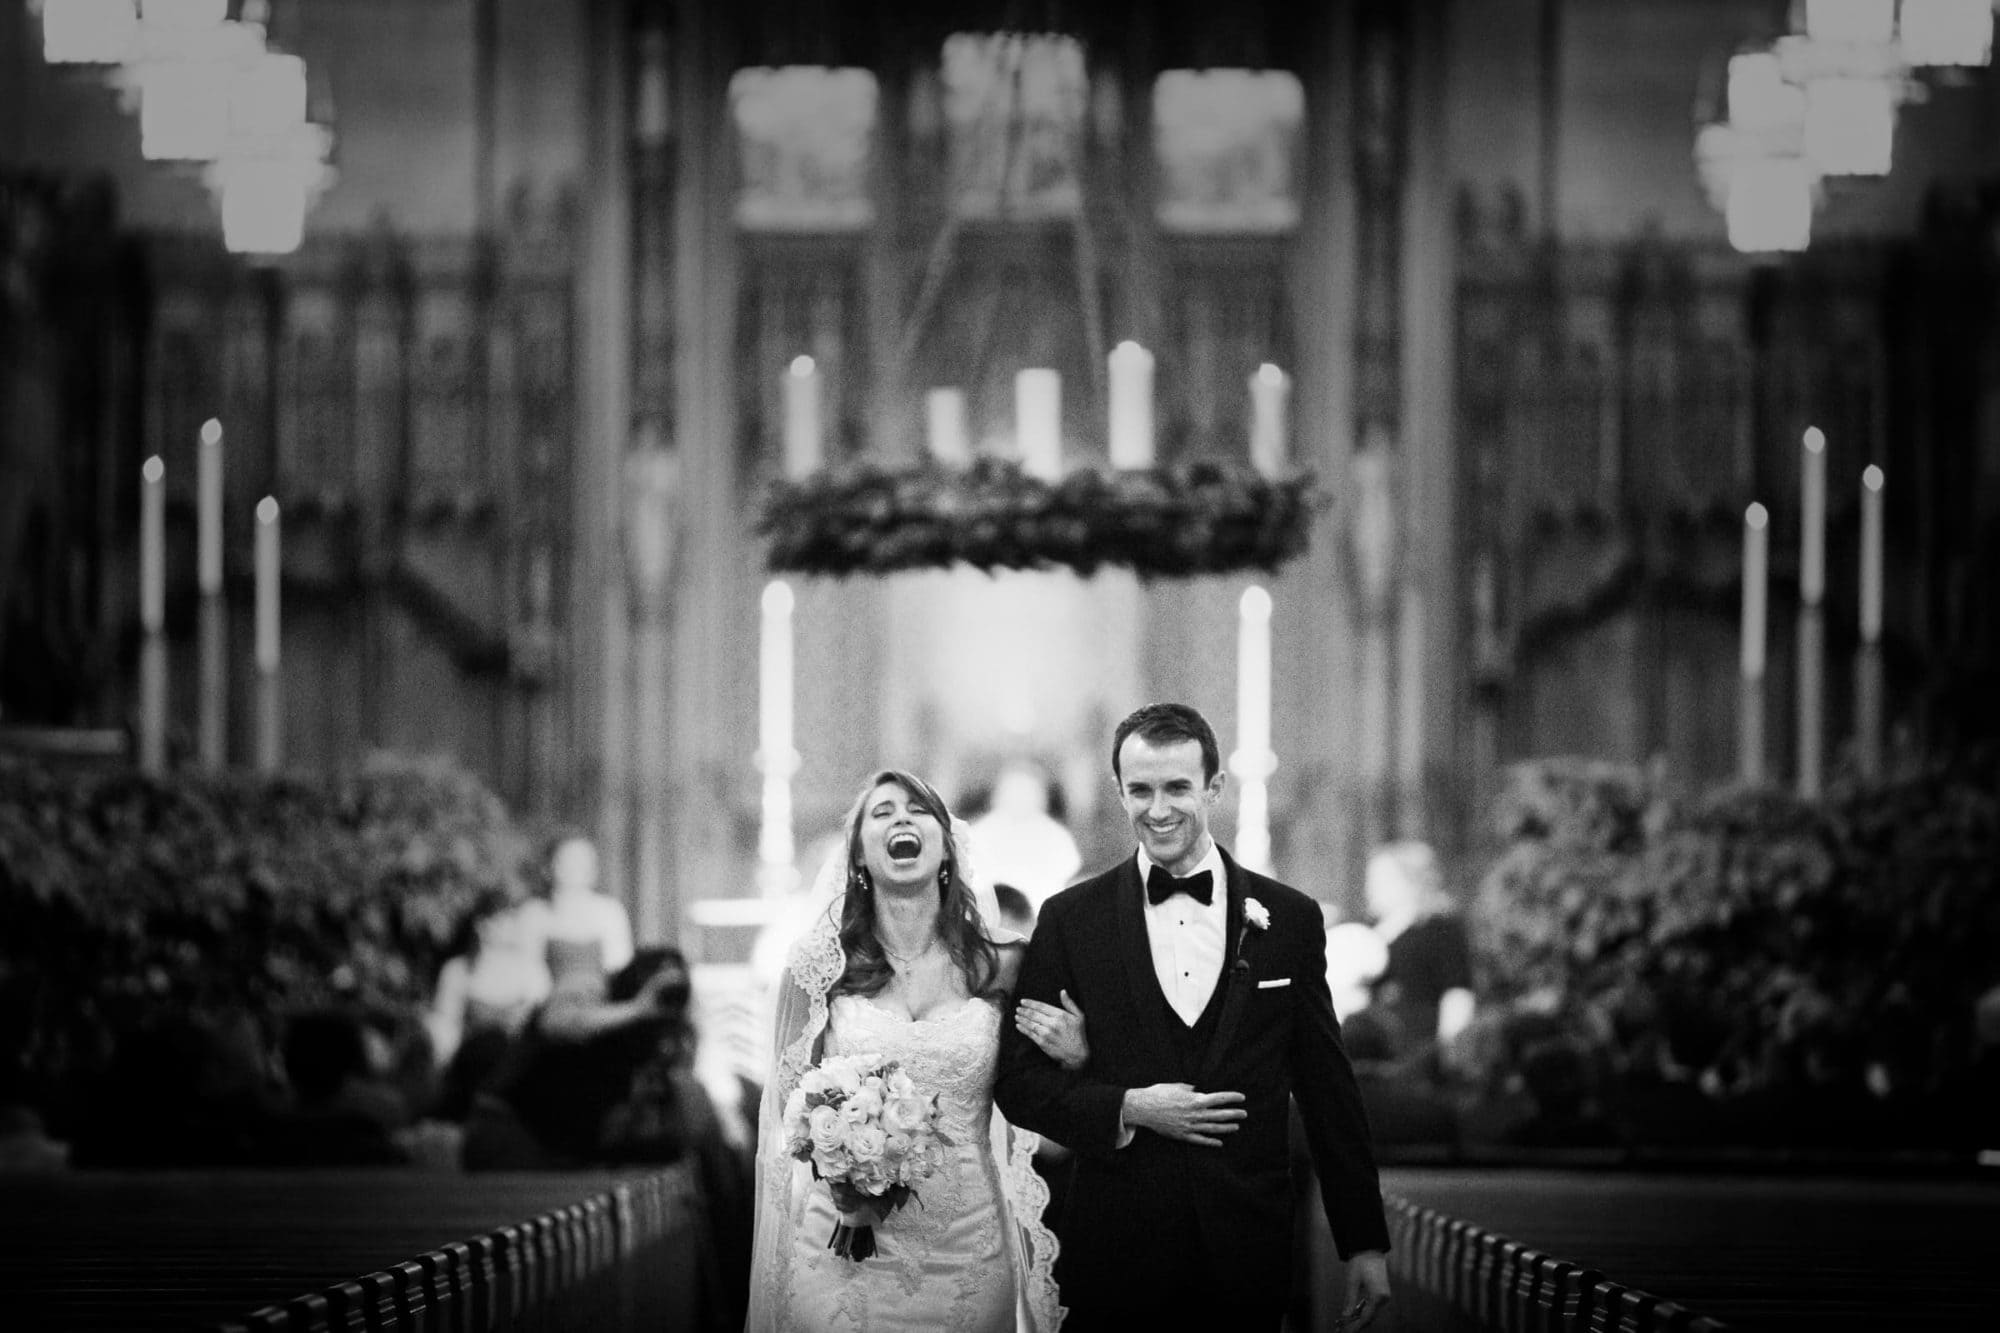 duke chapel bride groom recessional laughing bw 1